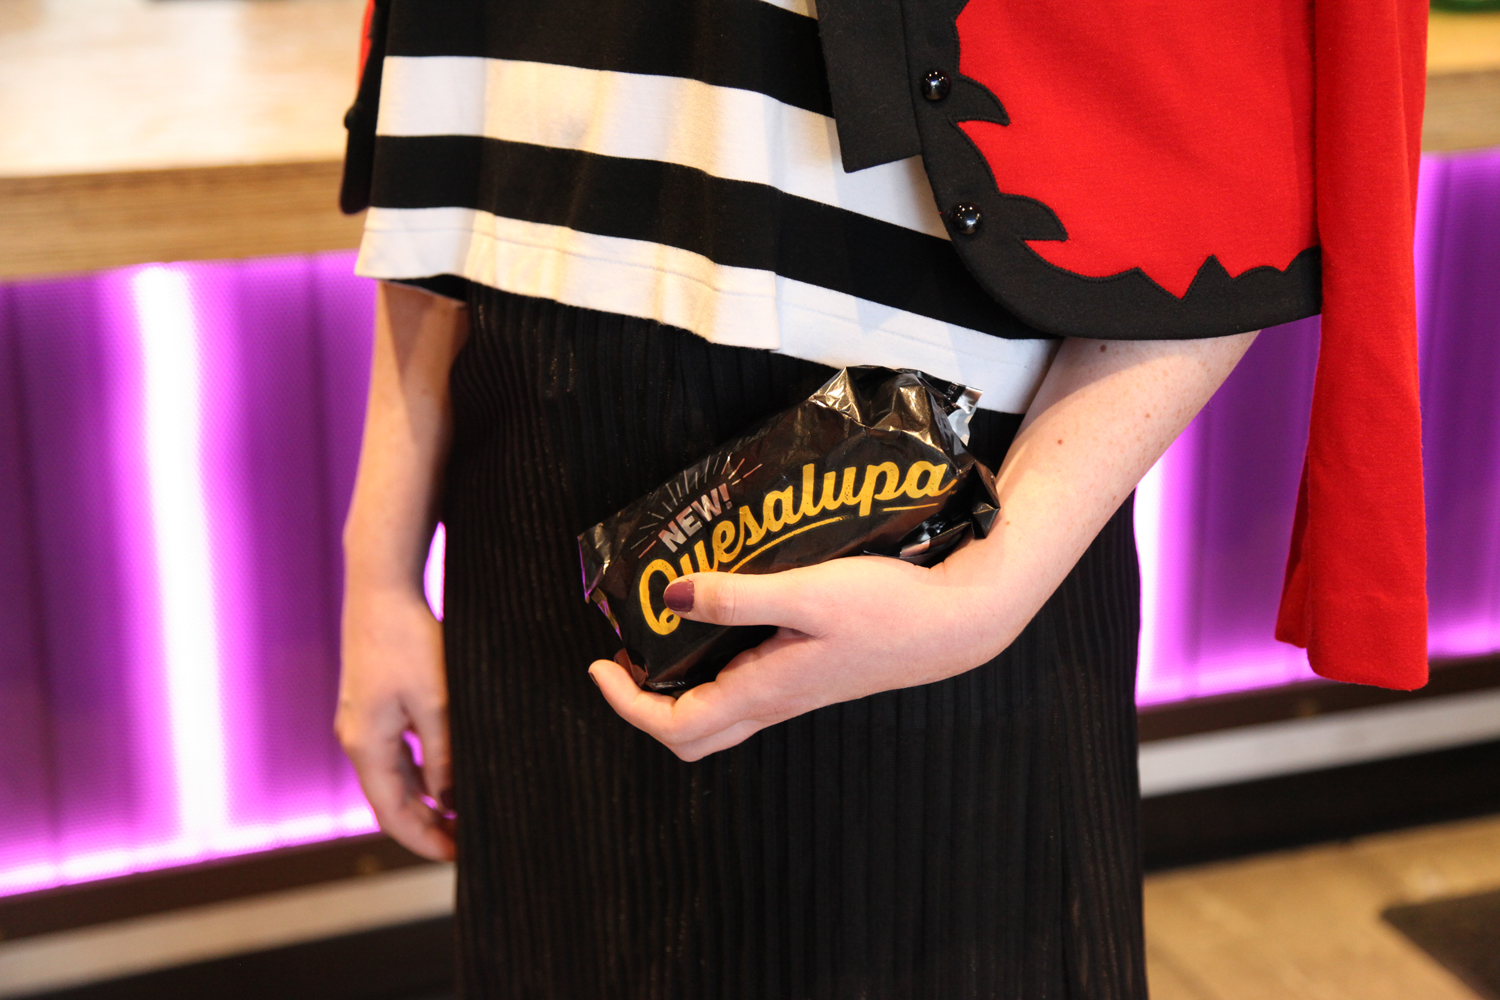 Quesalupa as my clutch, #clutch.